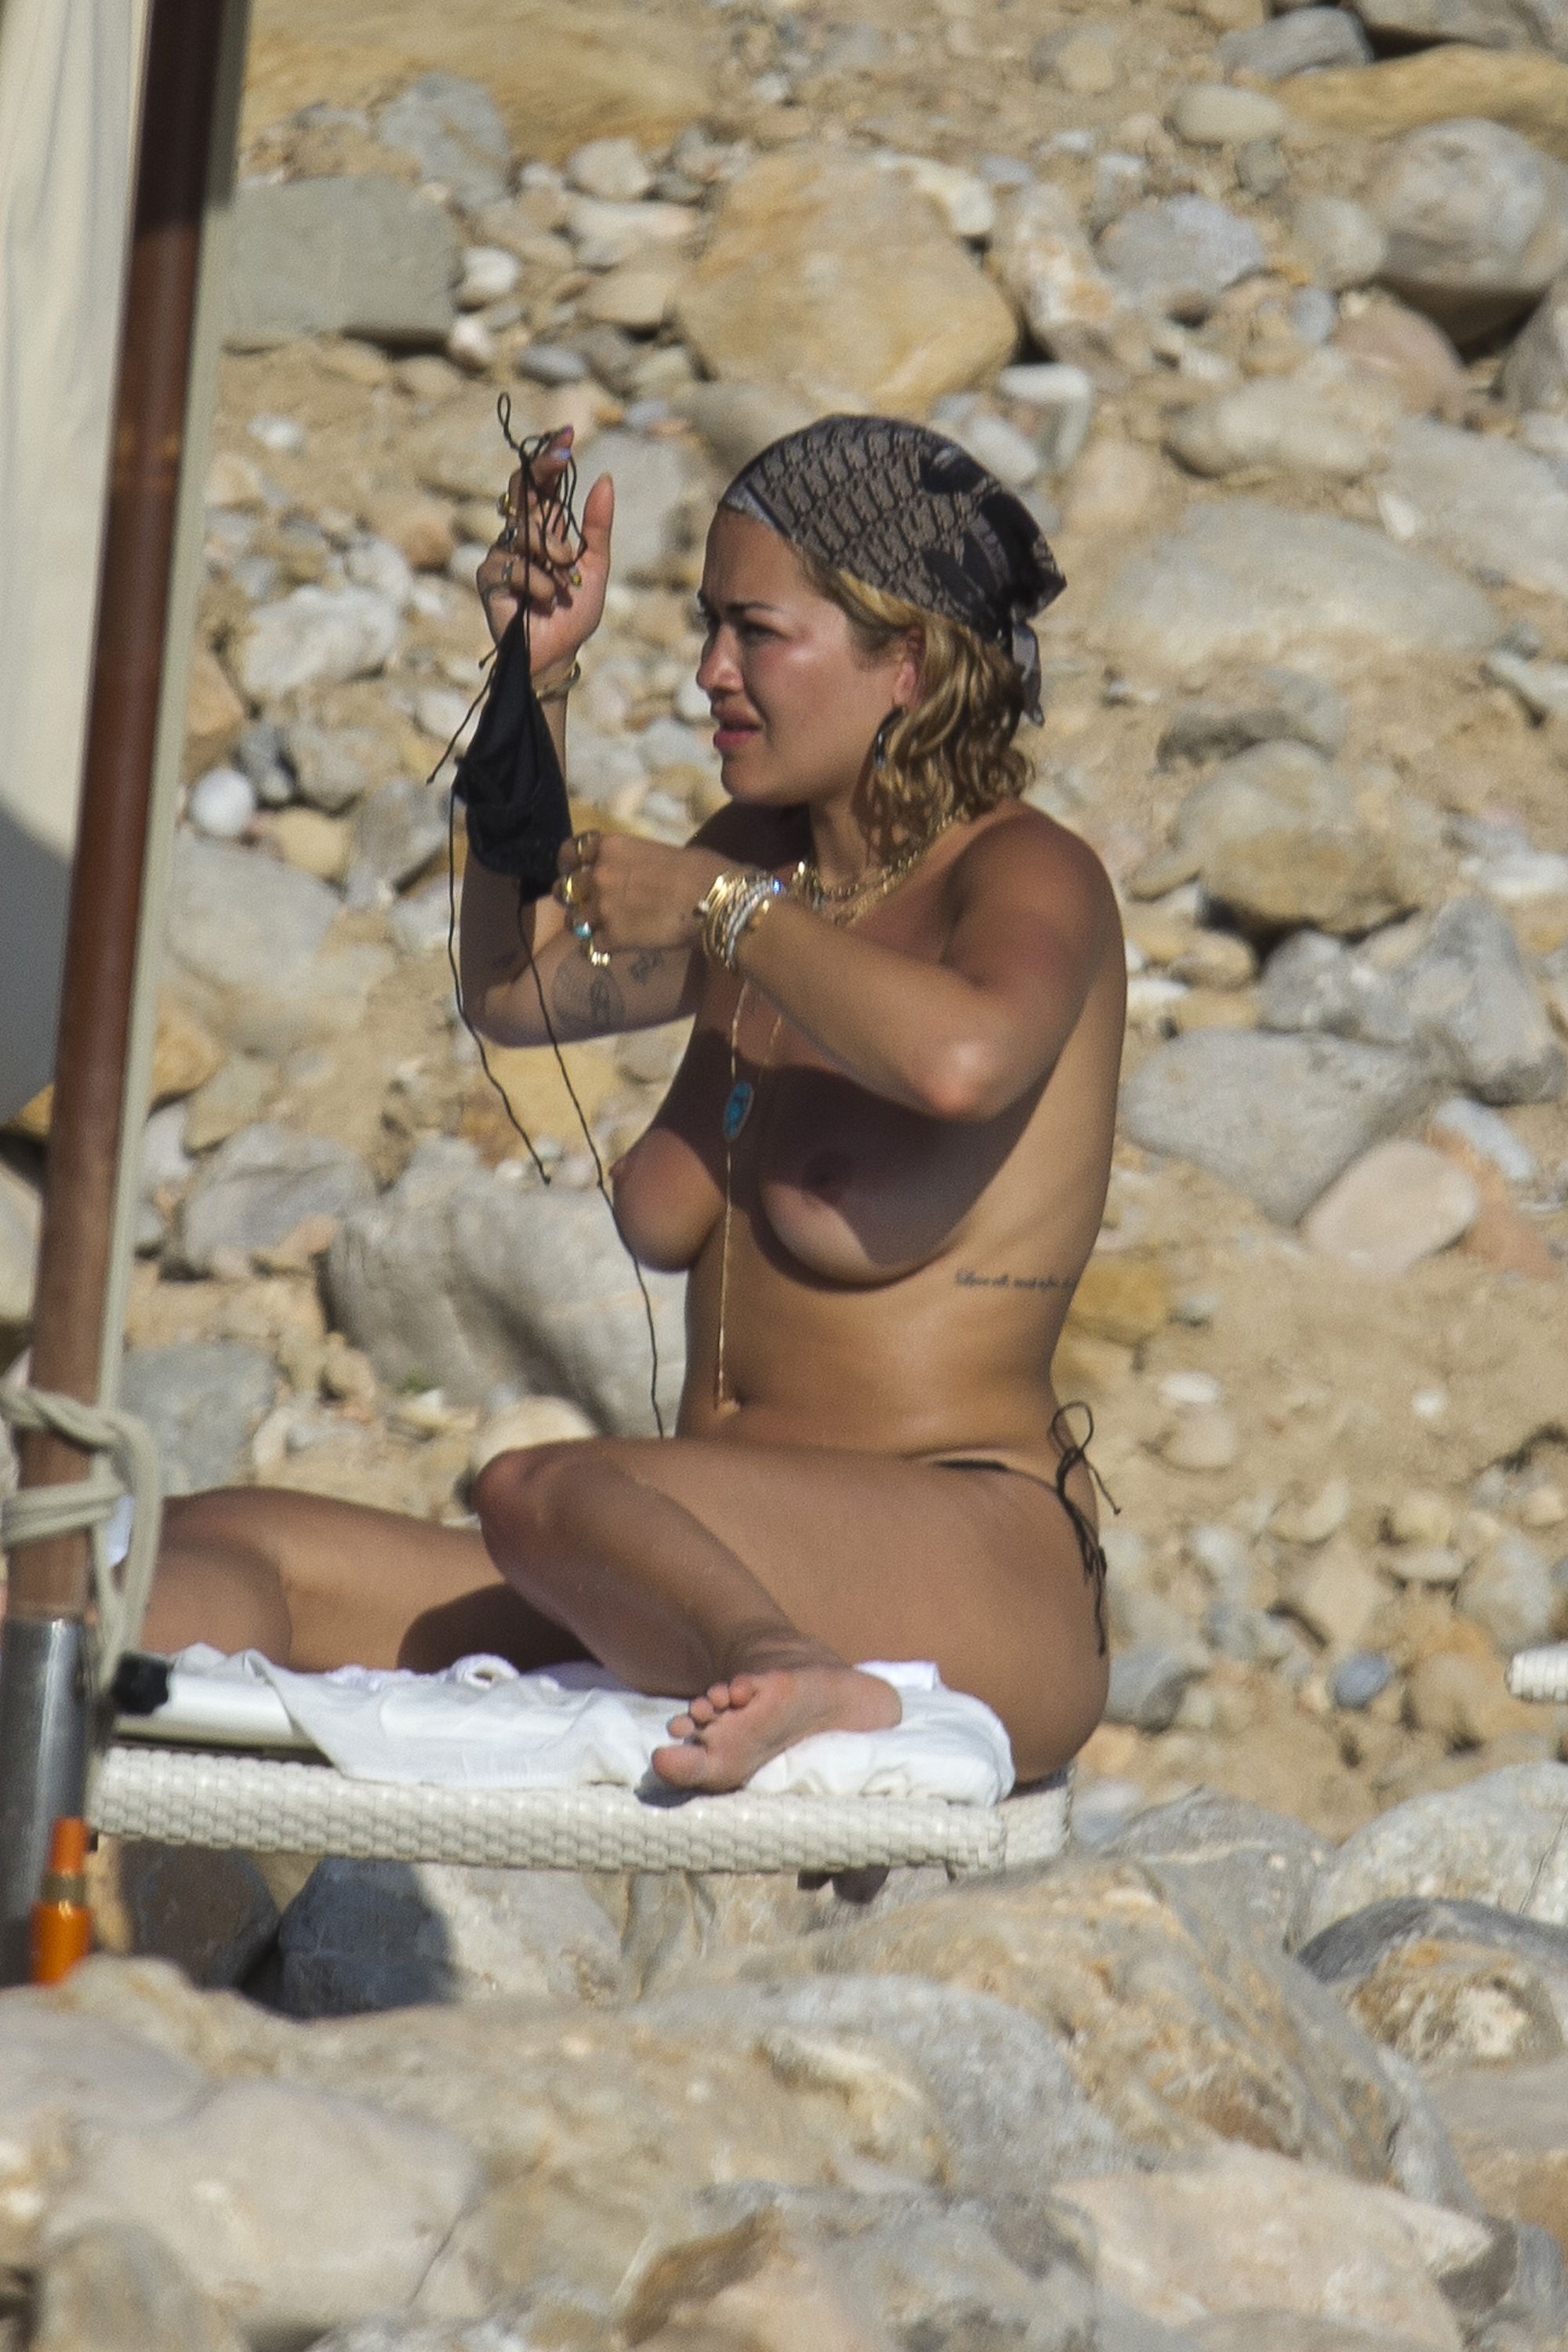 Rita Ora – Topless – On Holiday In Ibiza – 1st August 2020